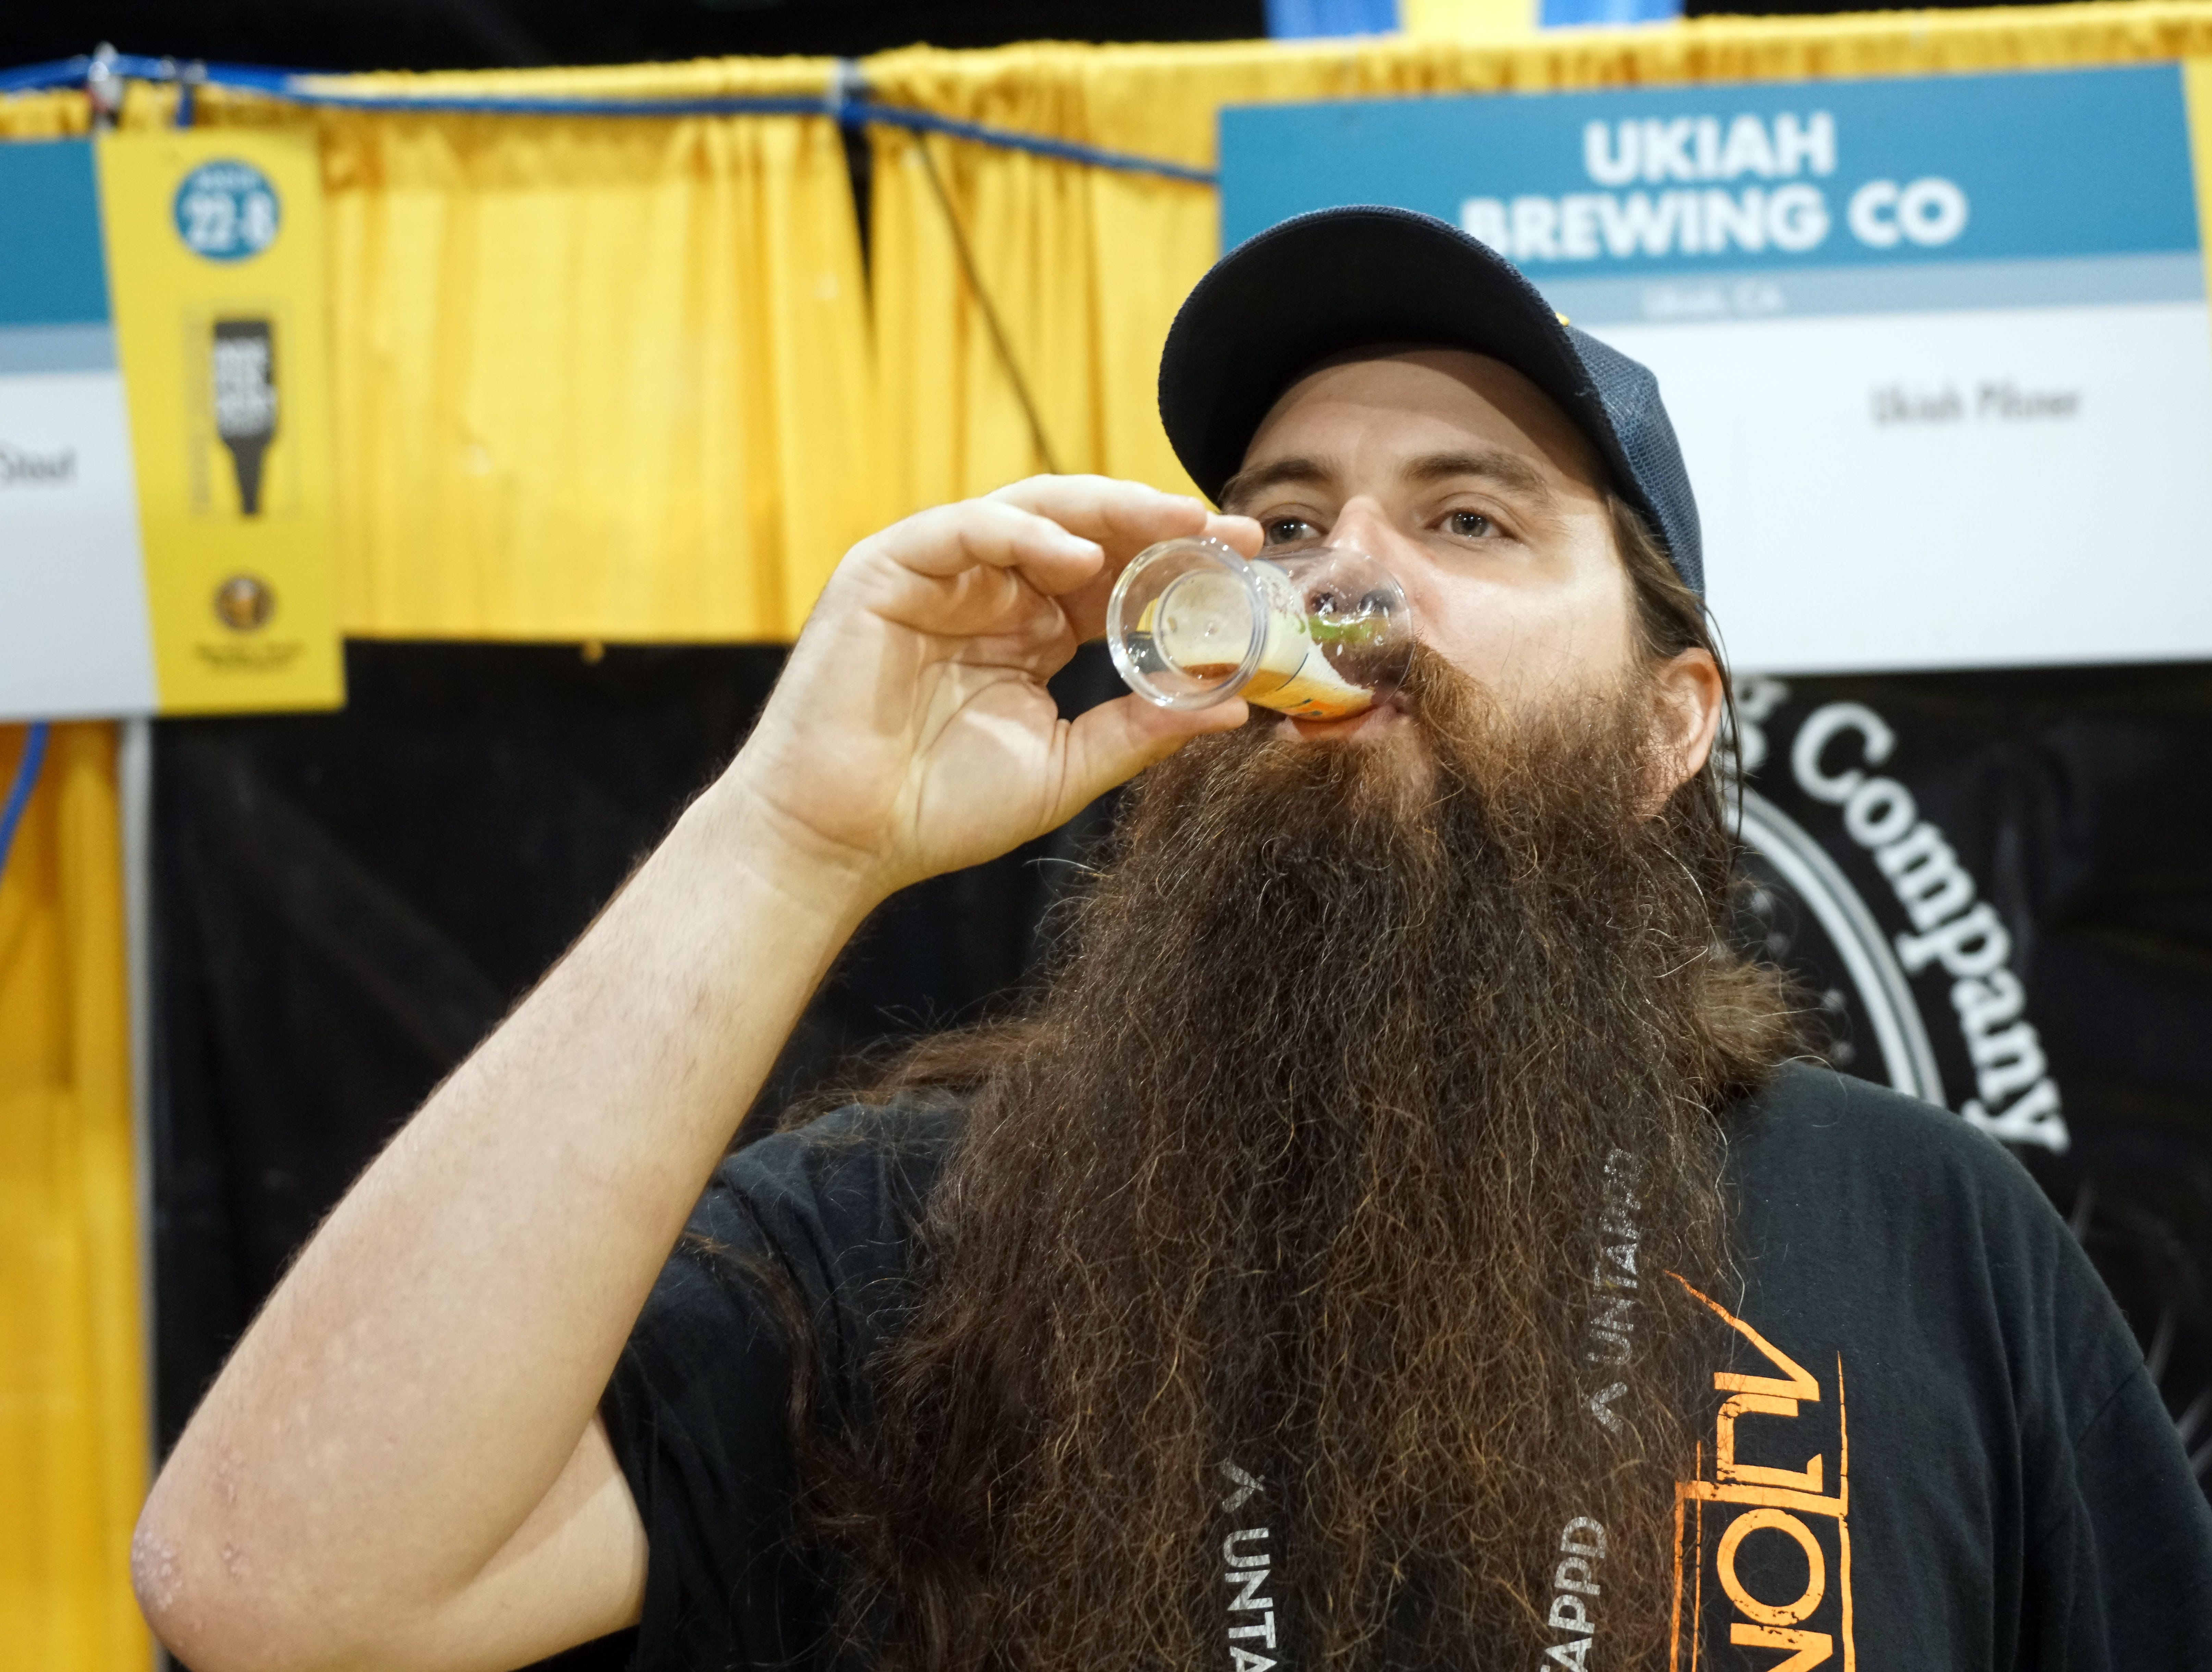 Scott Jones of Ukiah, Calif, tastes a beer during the Great American Beer Festival.